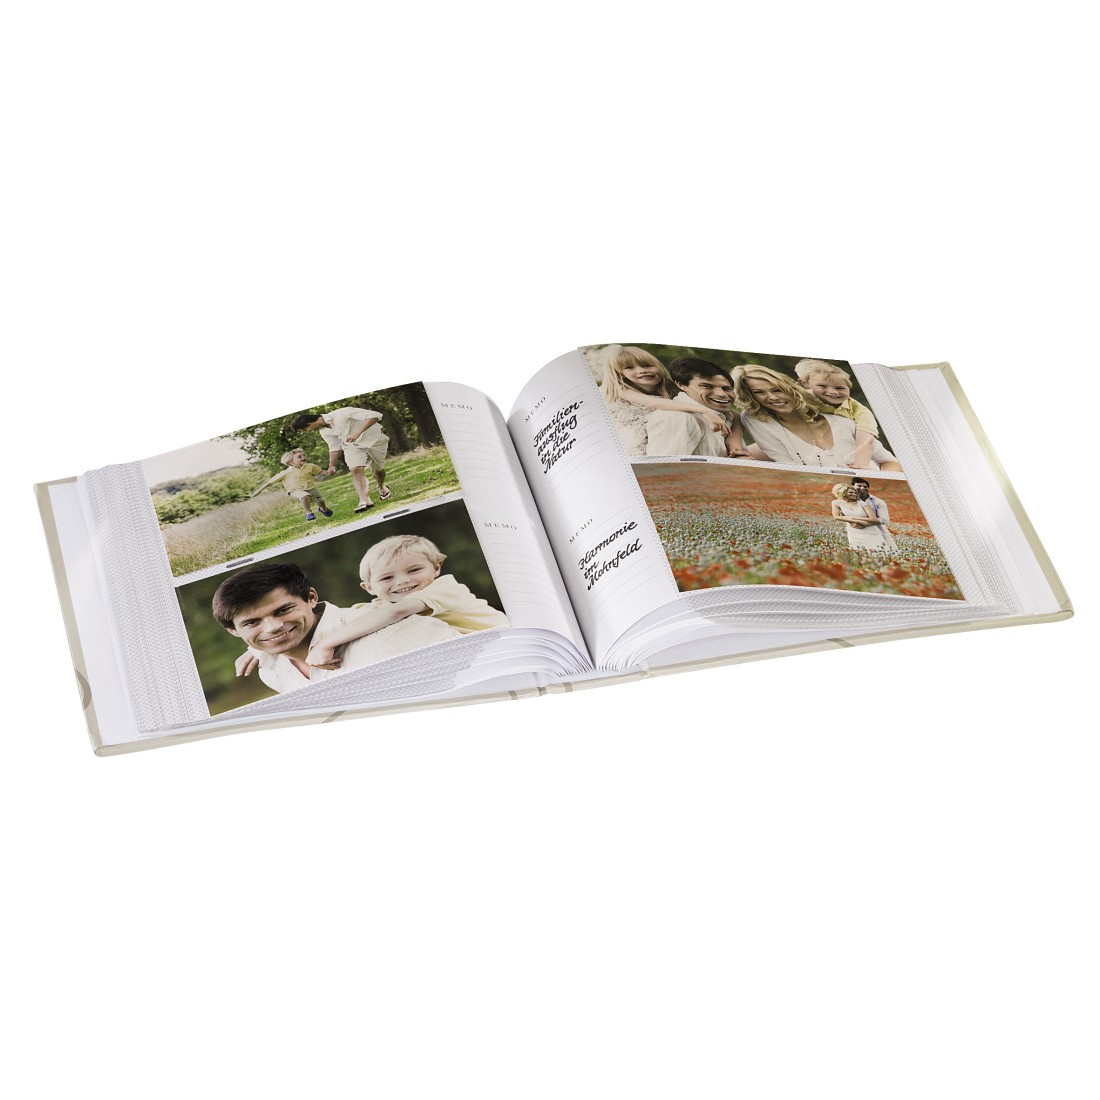 awx High-Res Appliance - Hama, Wild Rose Memo Album, for 200 photos with a size of 10x15 cm, white